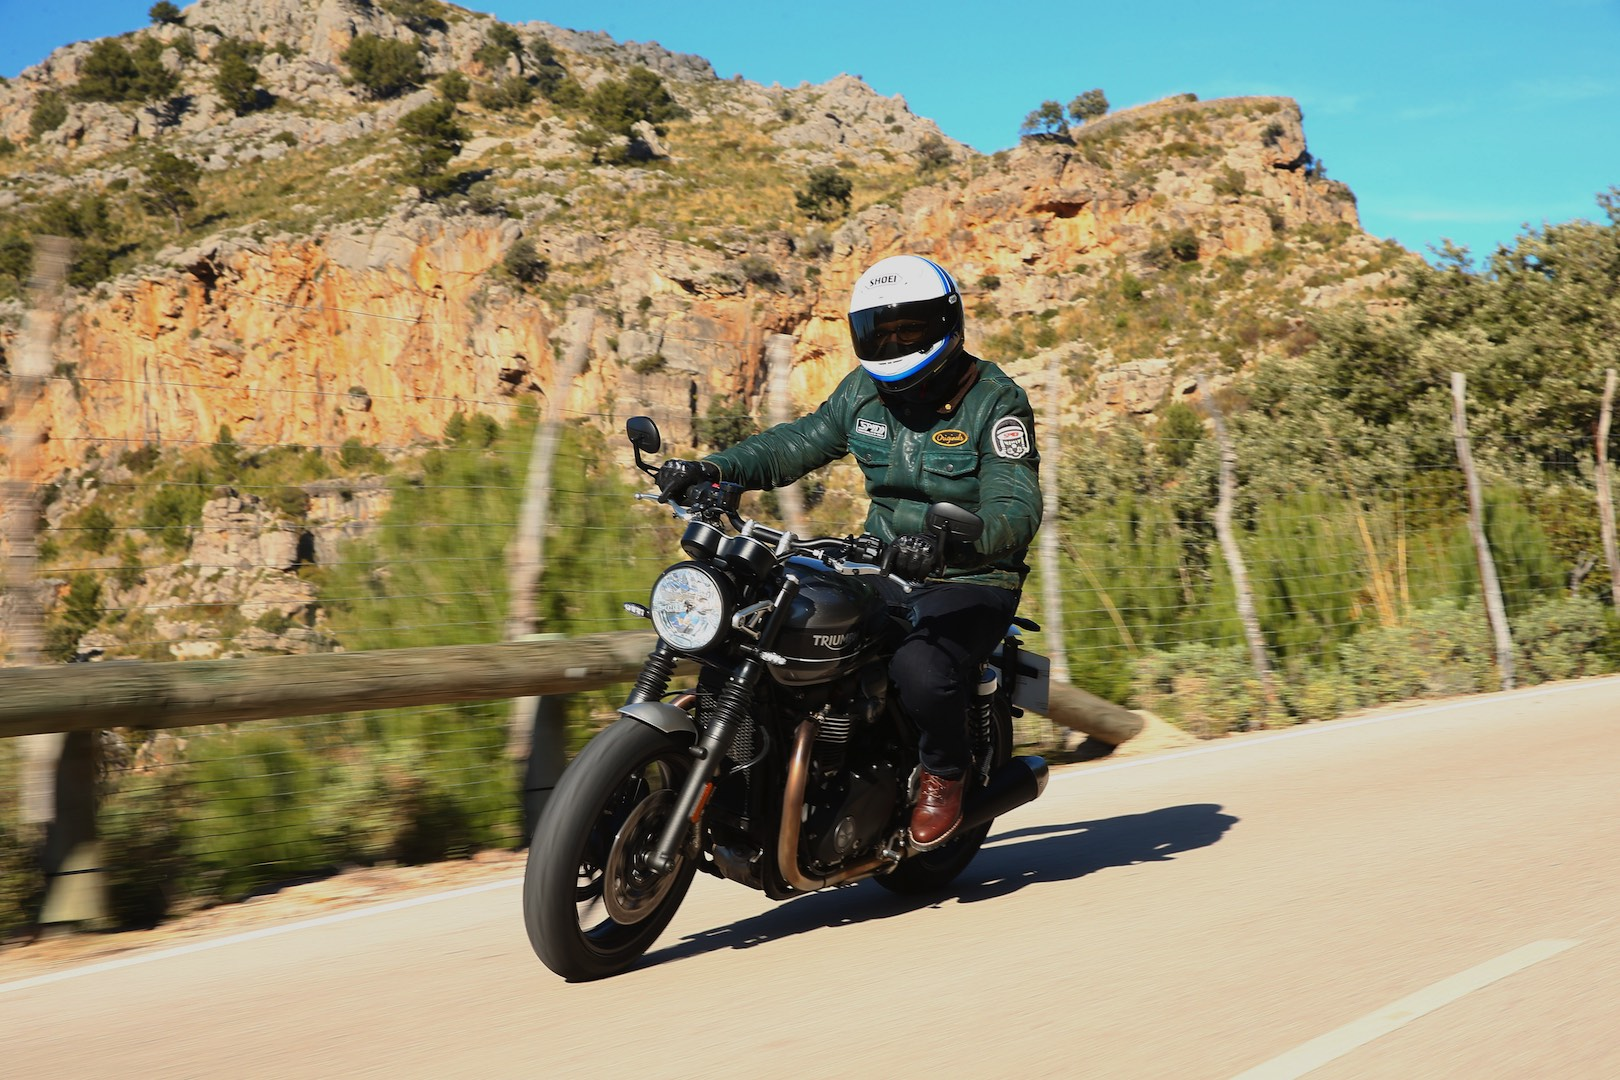 2019 Triumph Street Twin Test - In action